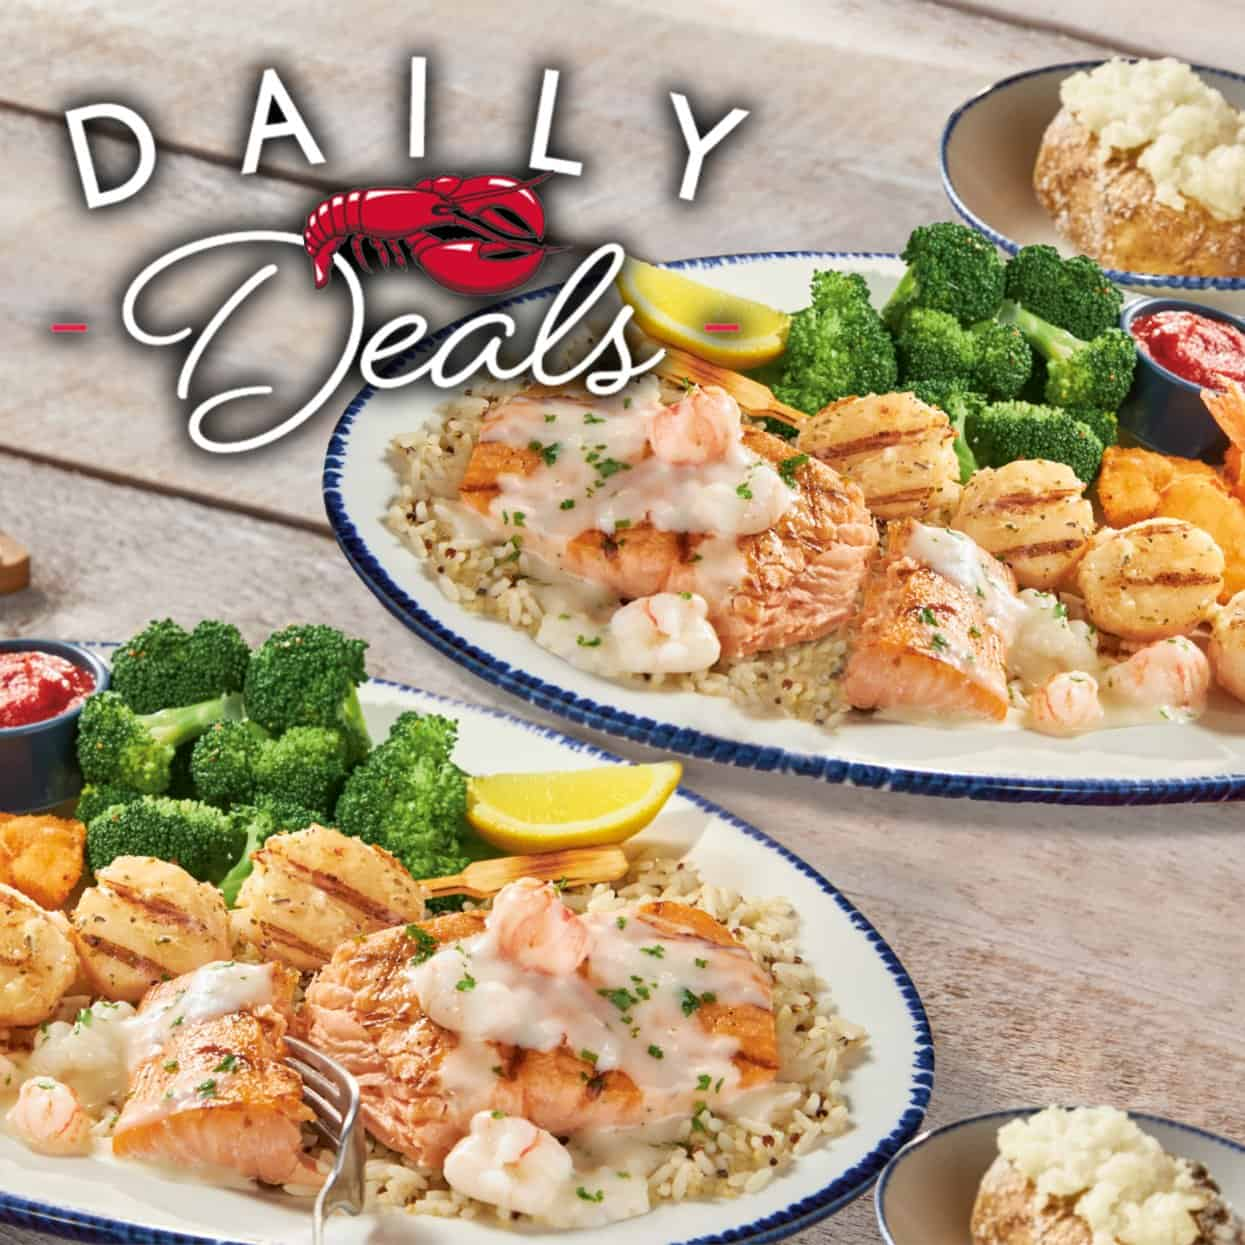 Kids eat free at Red Lobster deal one day only